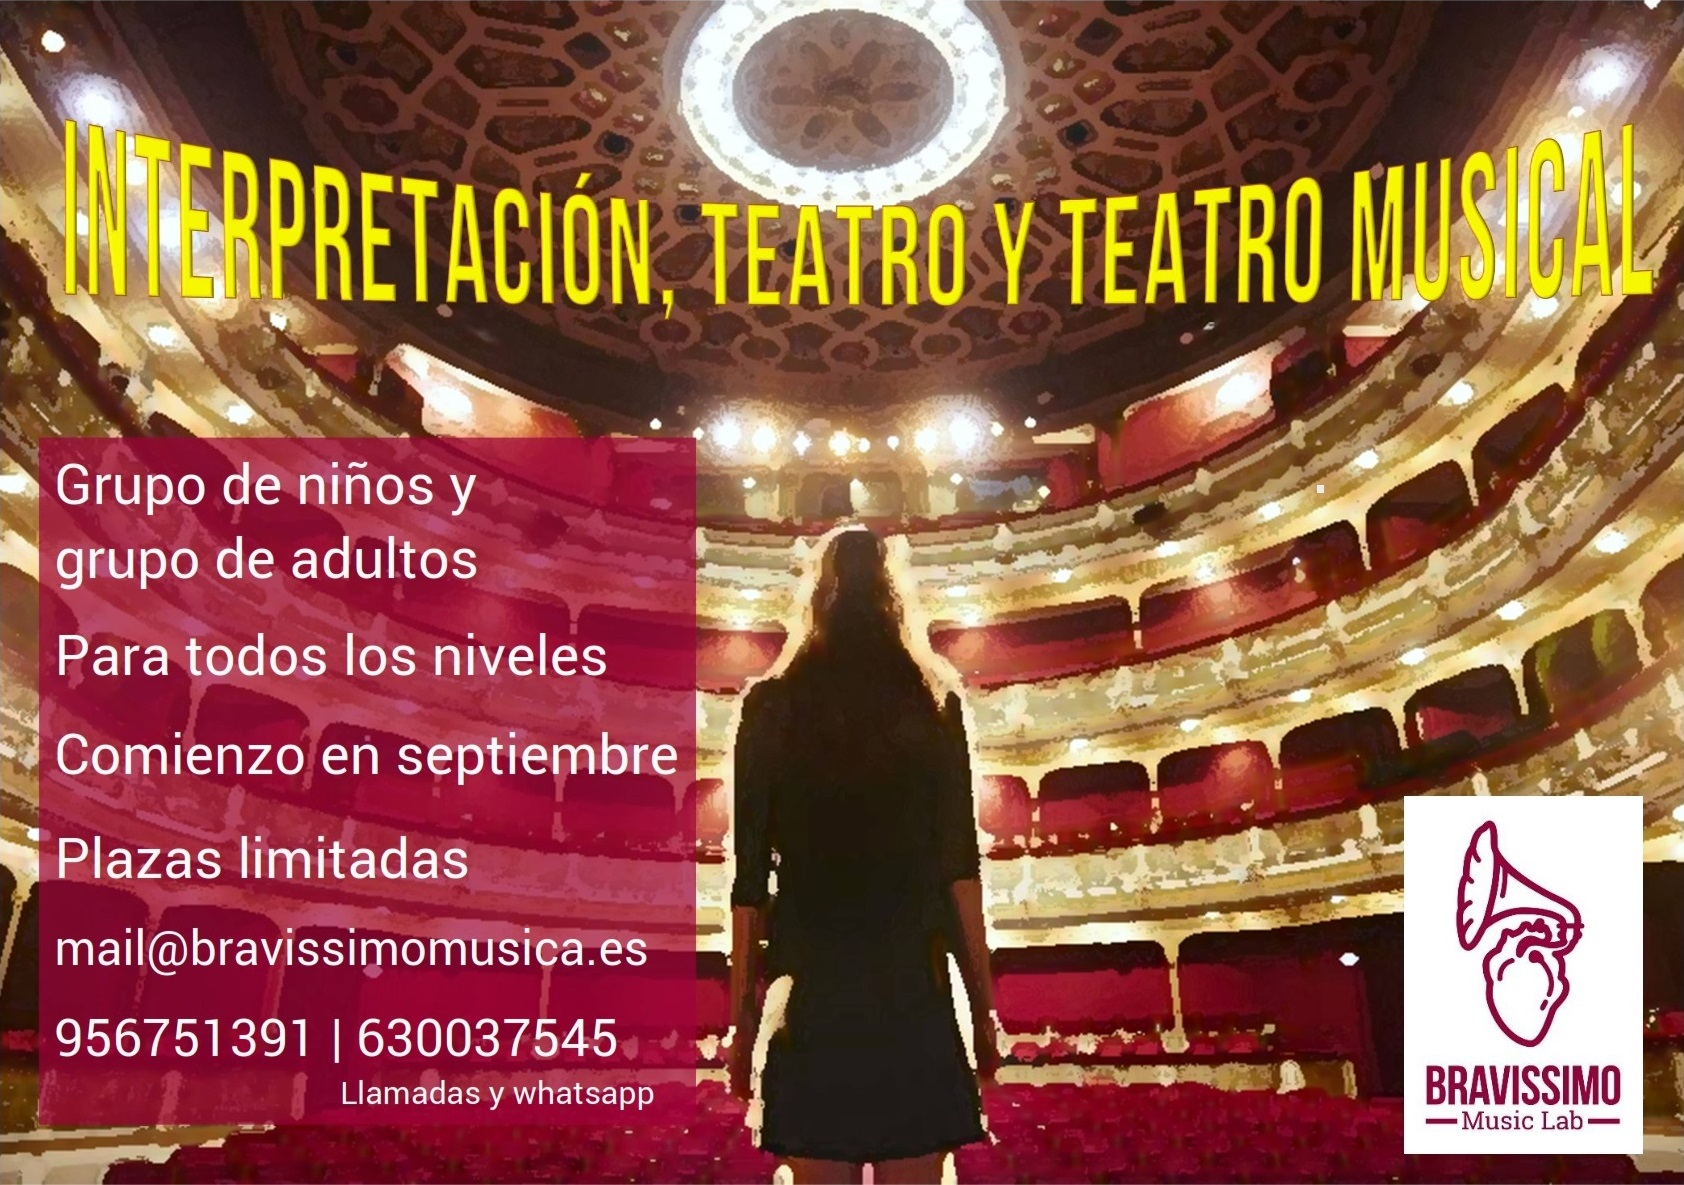 Interpretacion, Teatro y Teatro Musical Bravissimo Music Lab